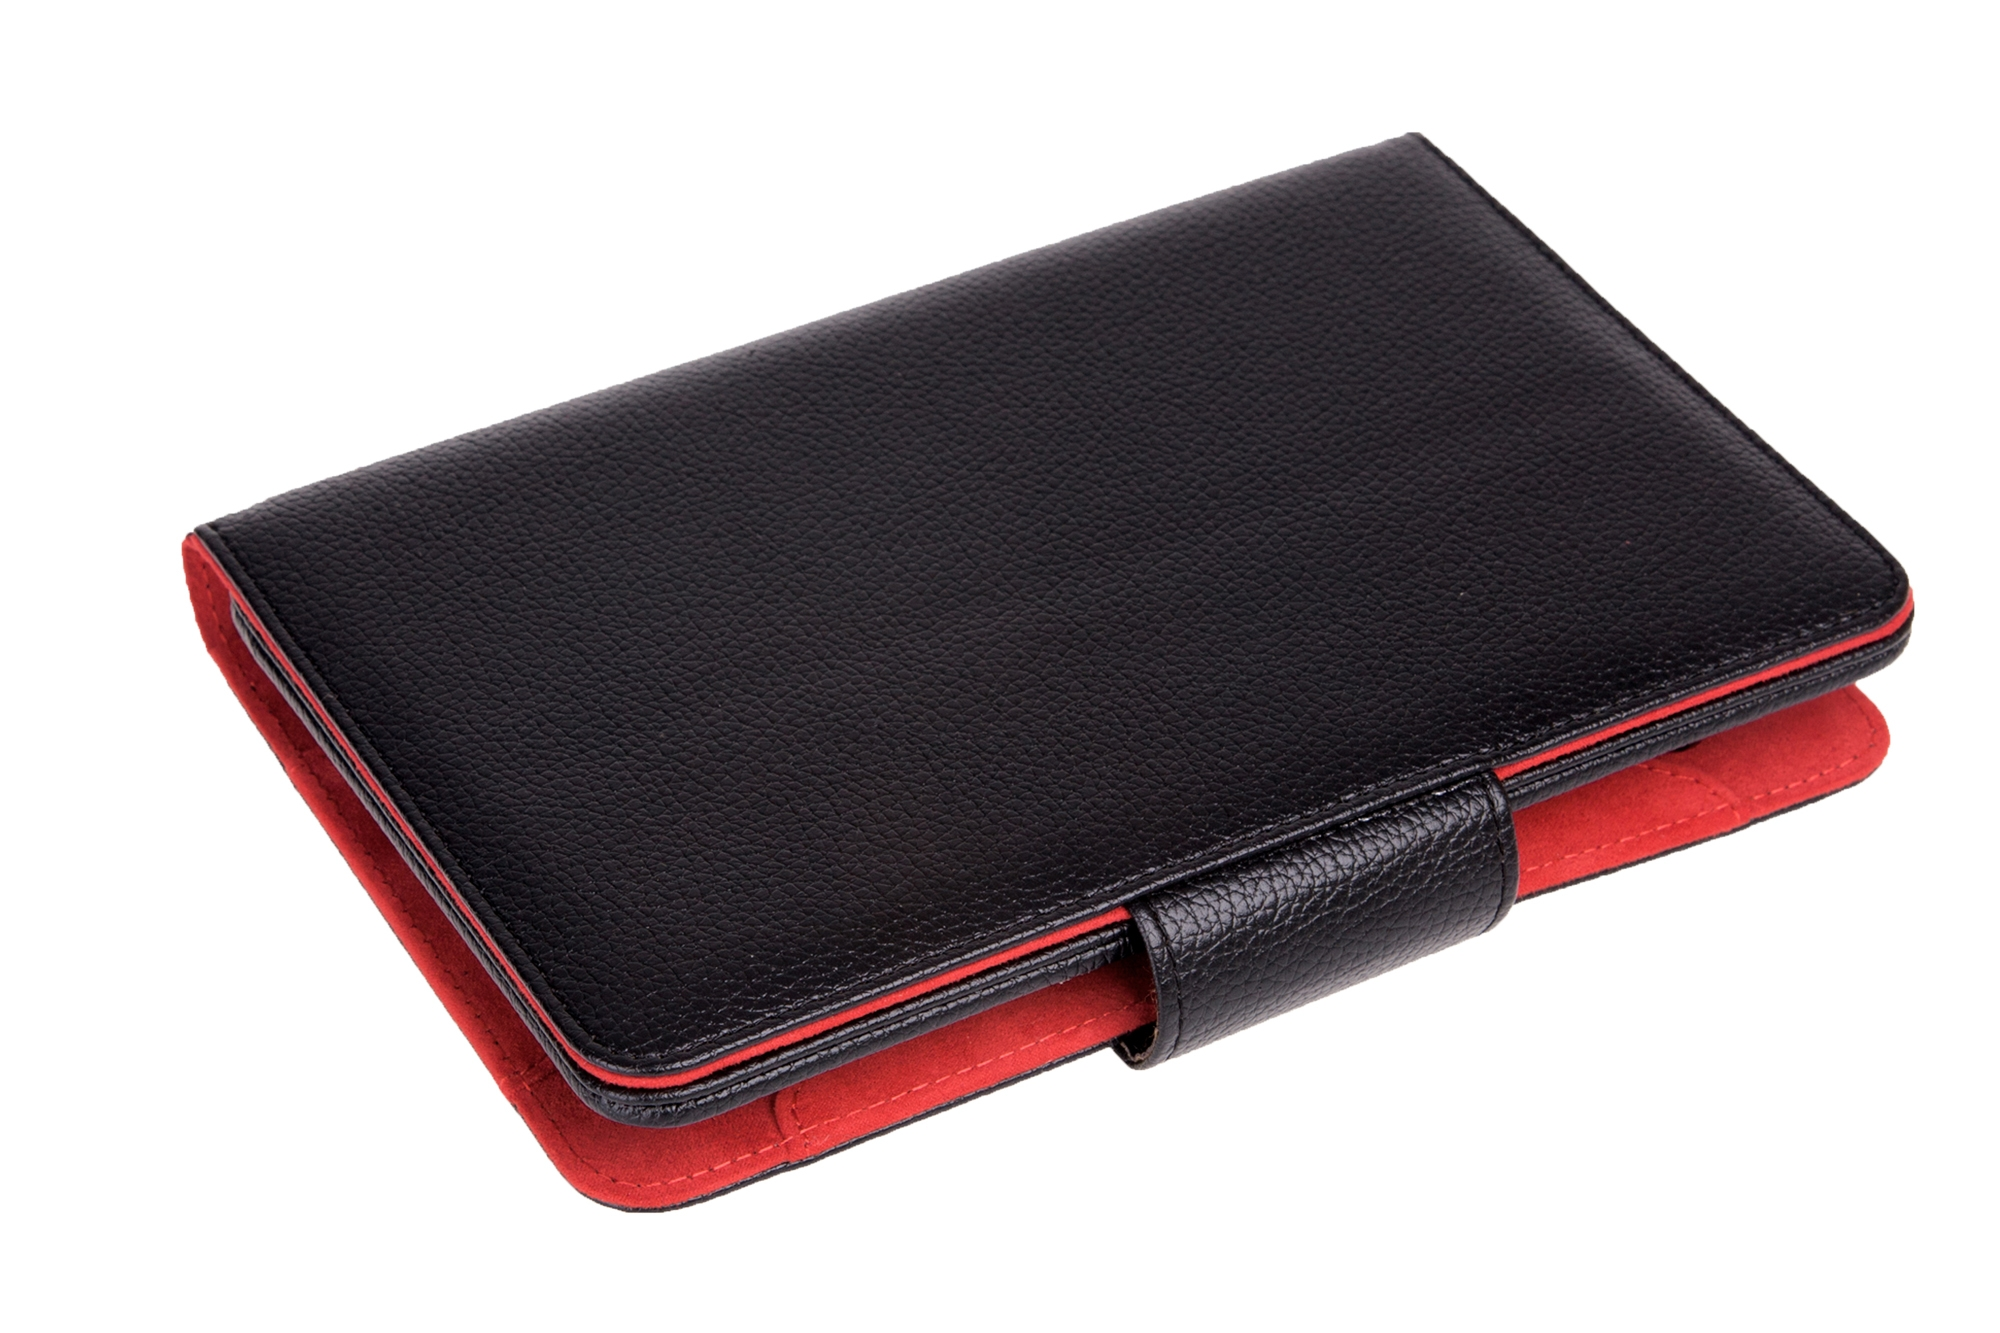 "FUNDA PHOENIX UNIVERSAL PARA TABLET / IPAD / EBOOK HASTA 9''-10.2"" , NEGRA"